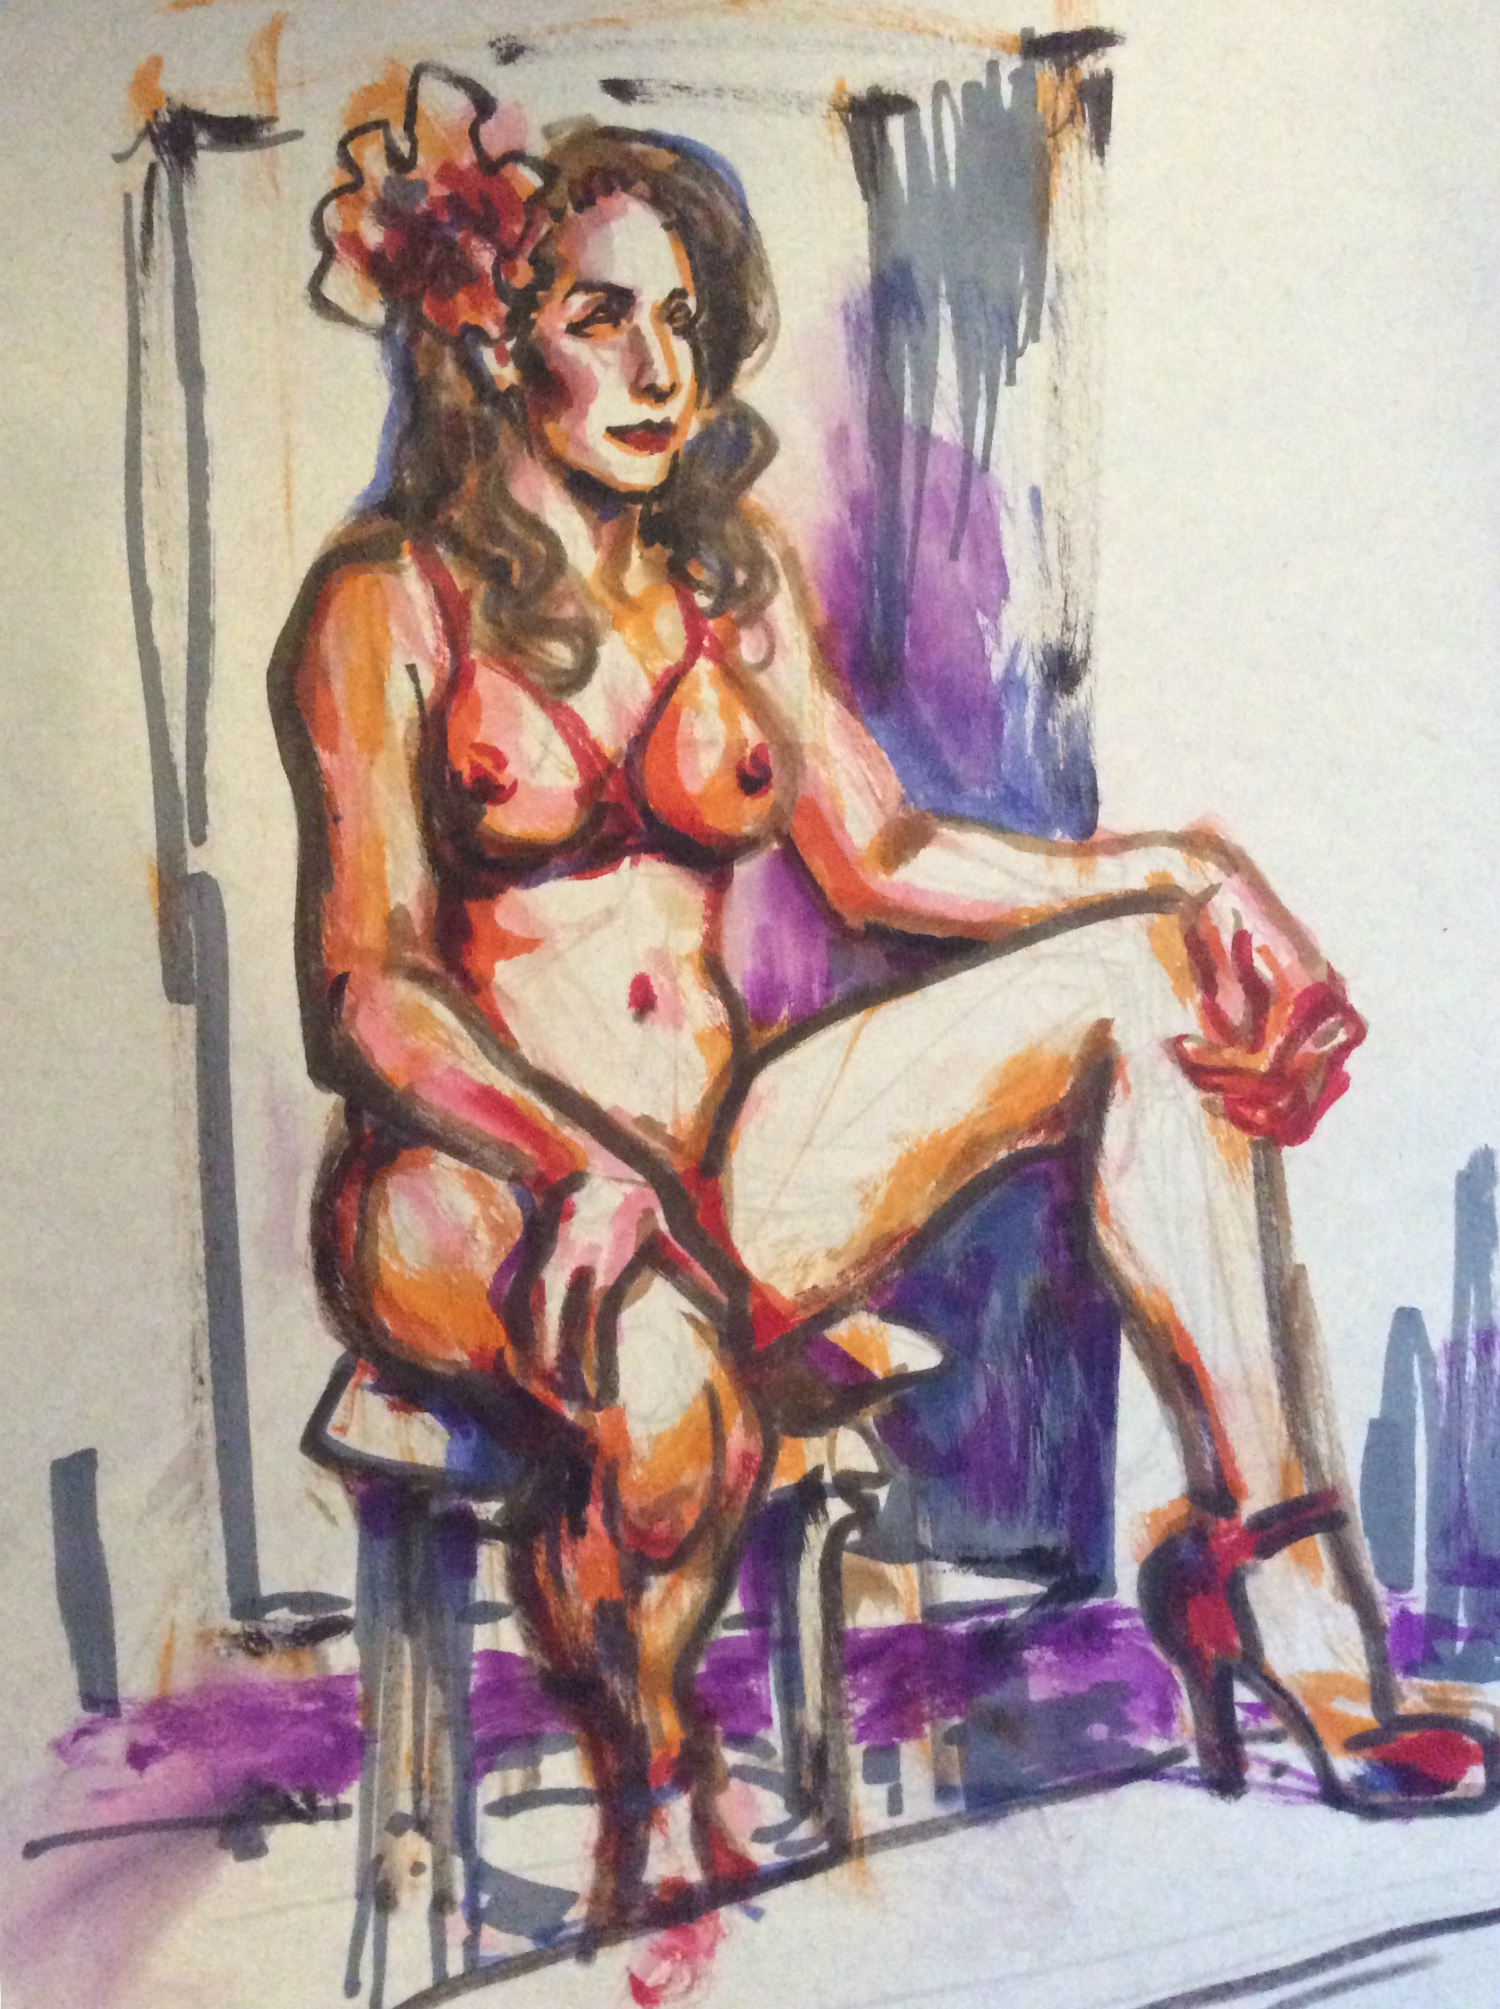 Watercolor brush pen drawing of Chiqui Love seated by Suzanne Forbes Jan 28 2020